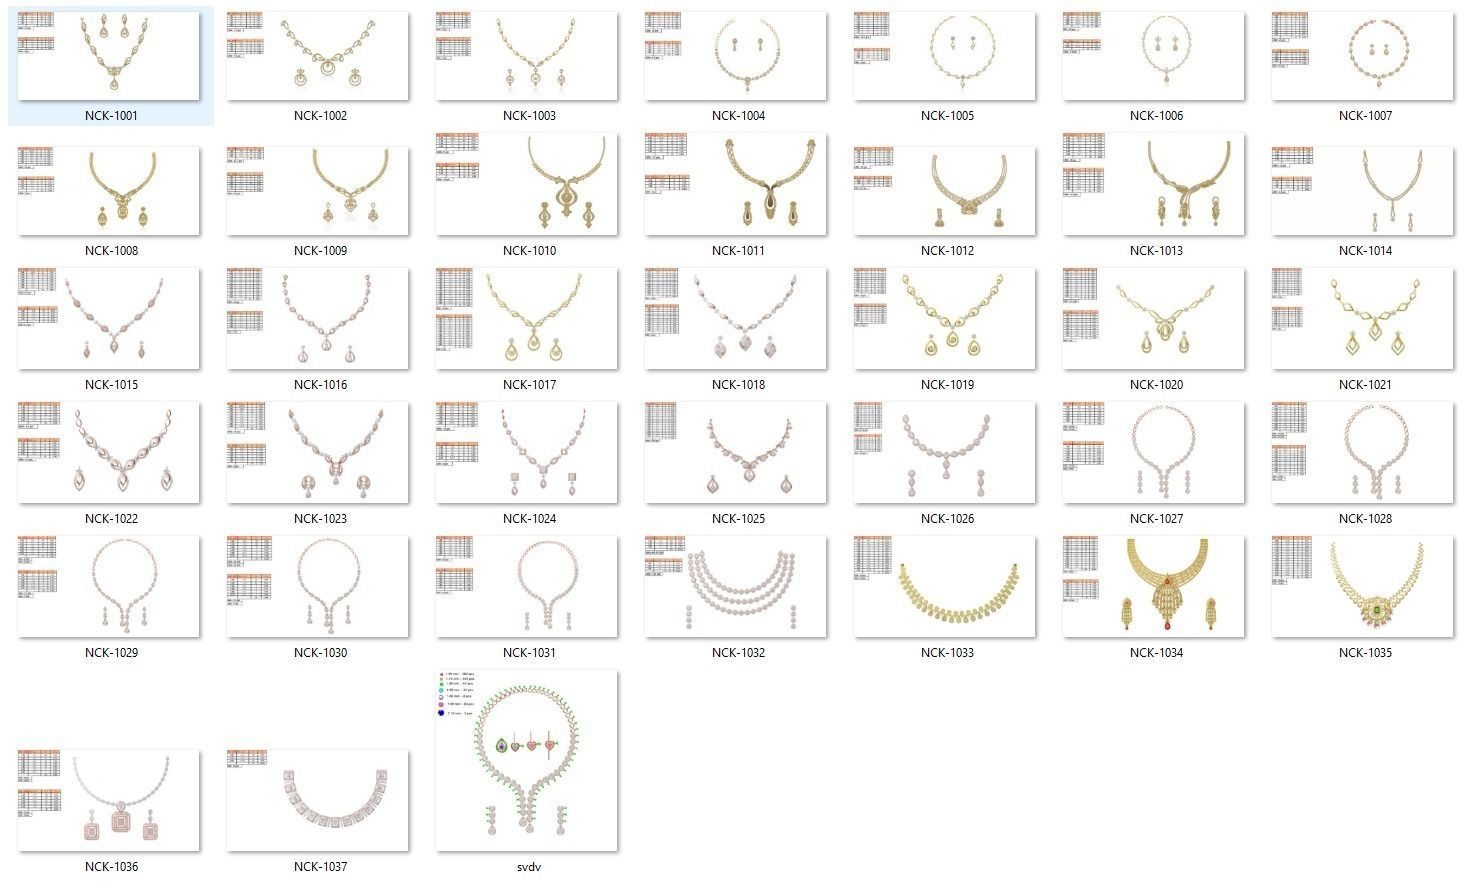 Collection- Bulk Necklace-0001-jcd-38 Files